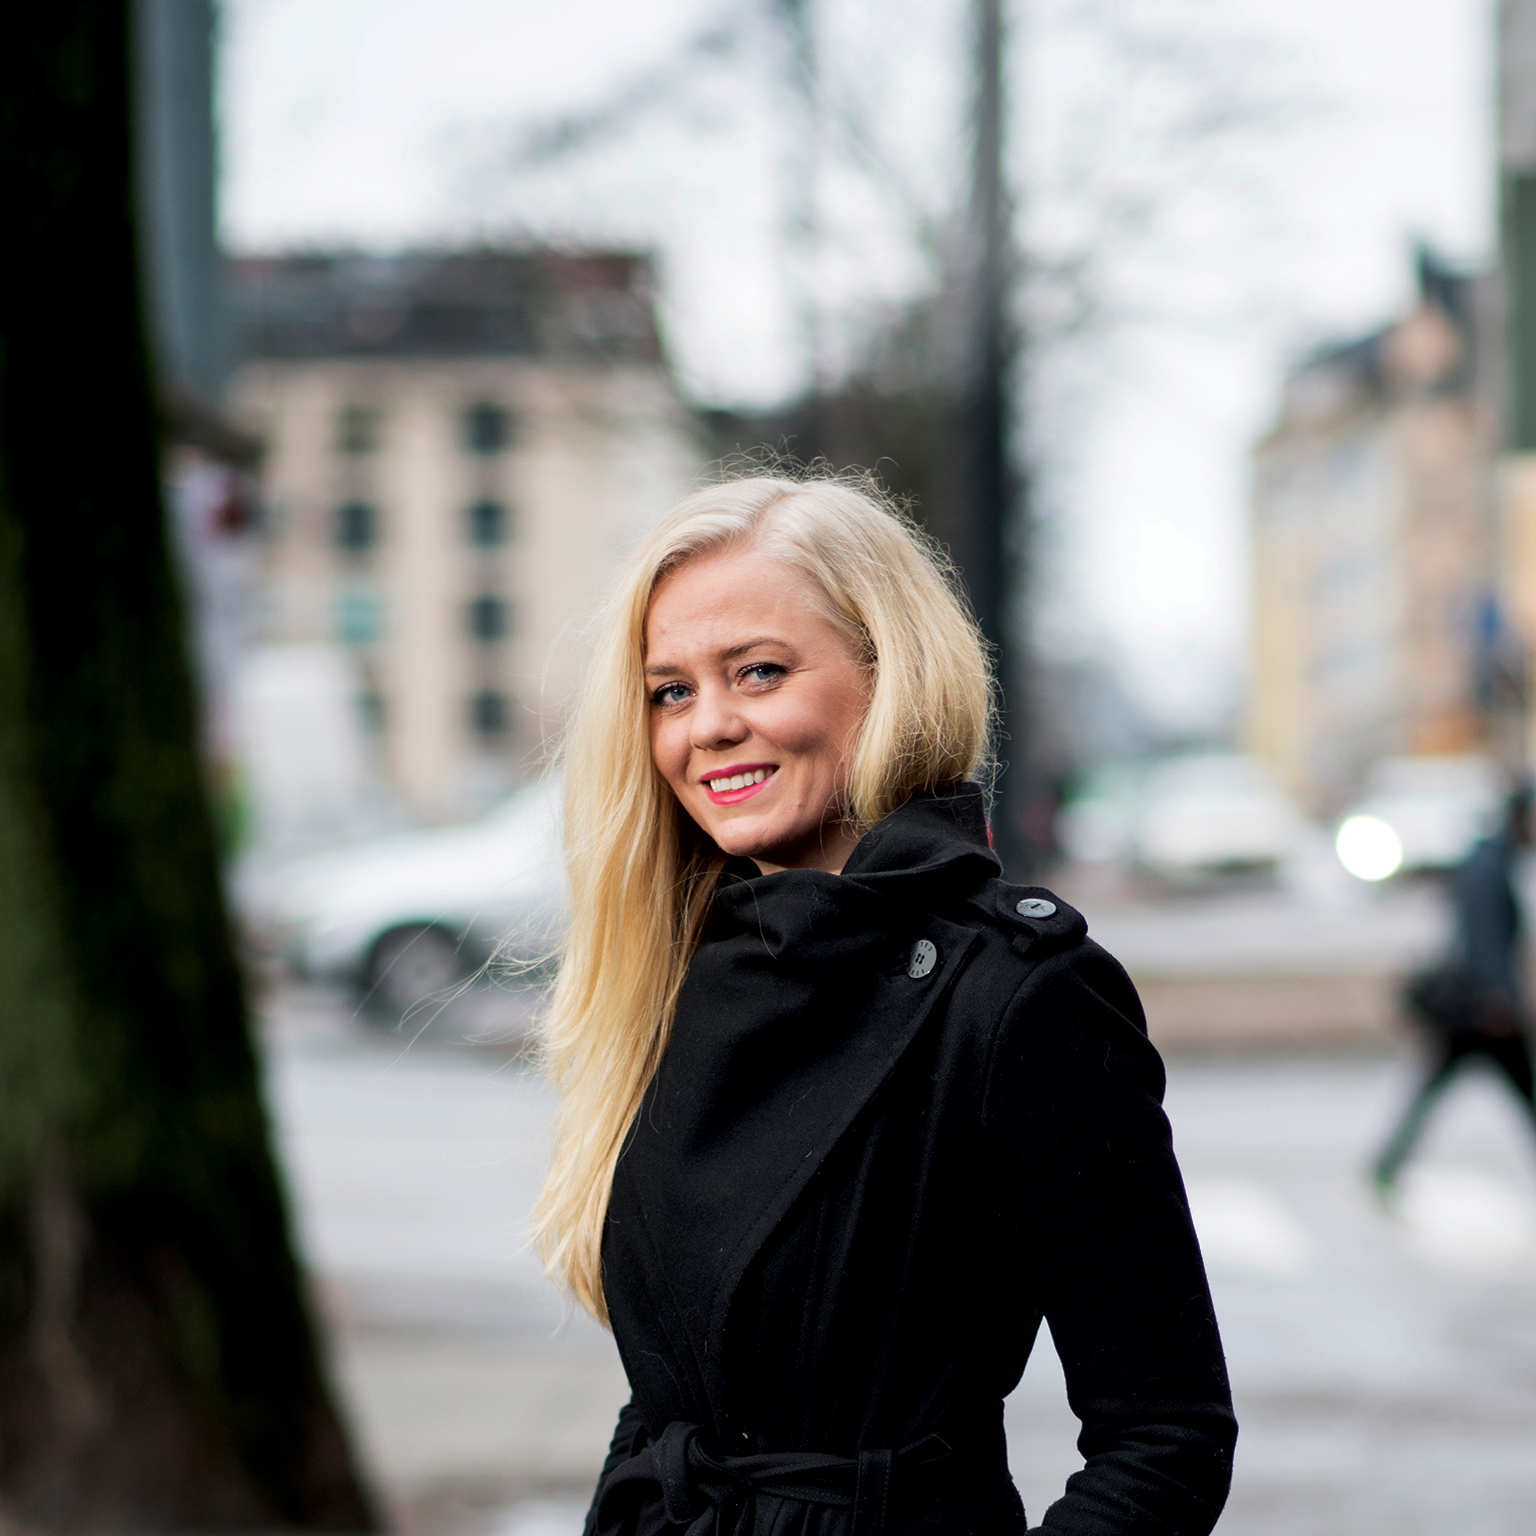 how-wellbeing-improves-performance:-an-interview-with-annastiina-hintsa